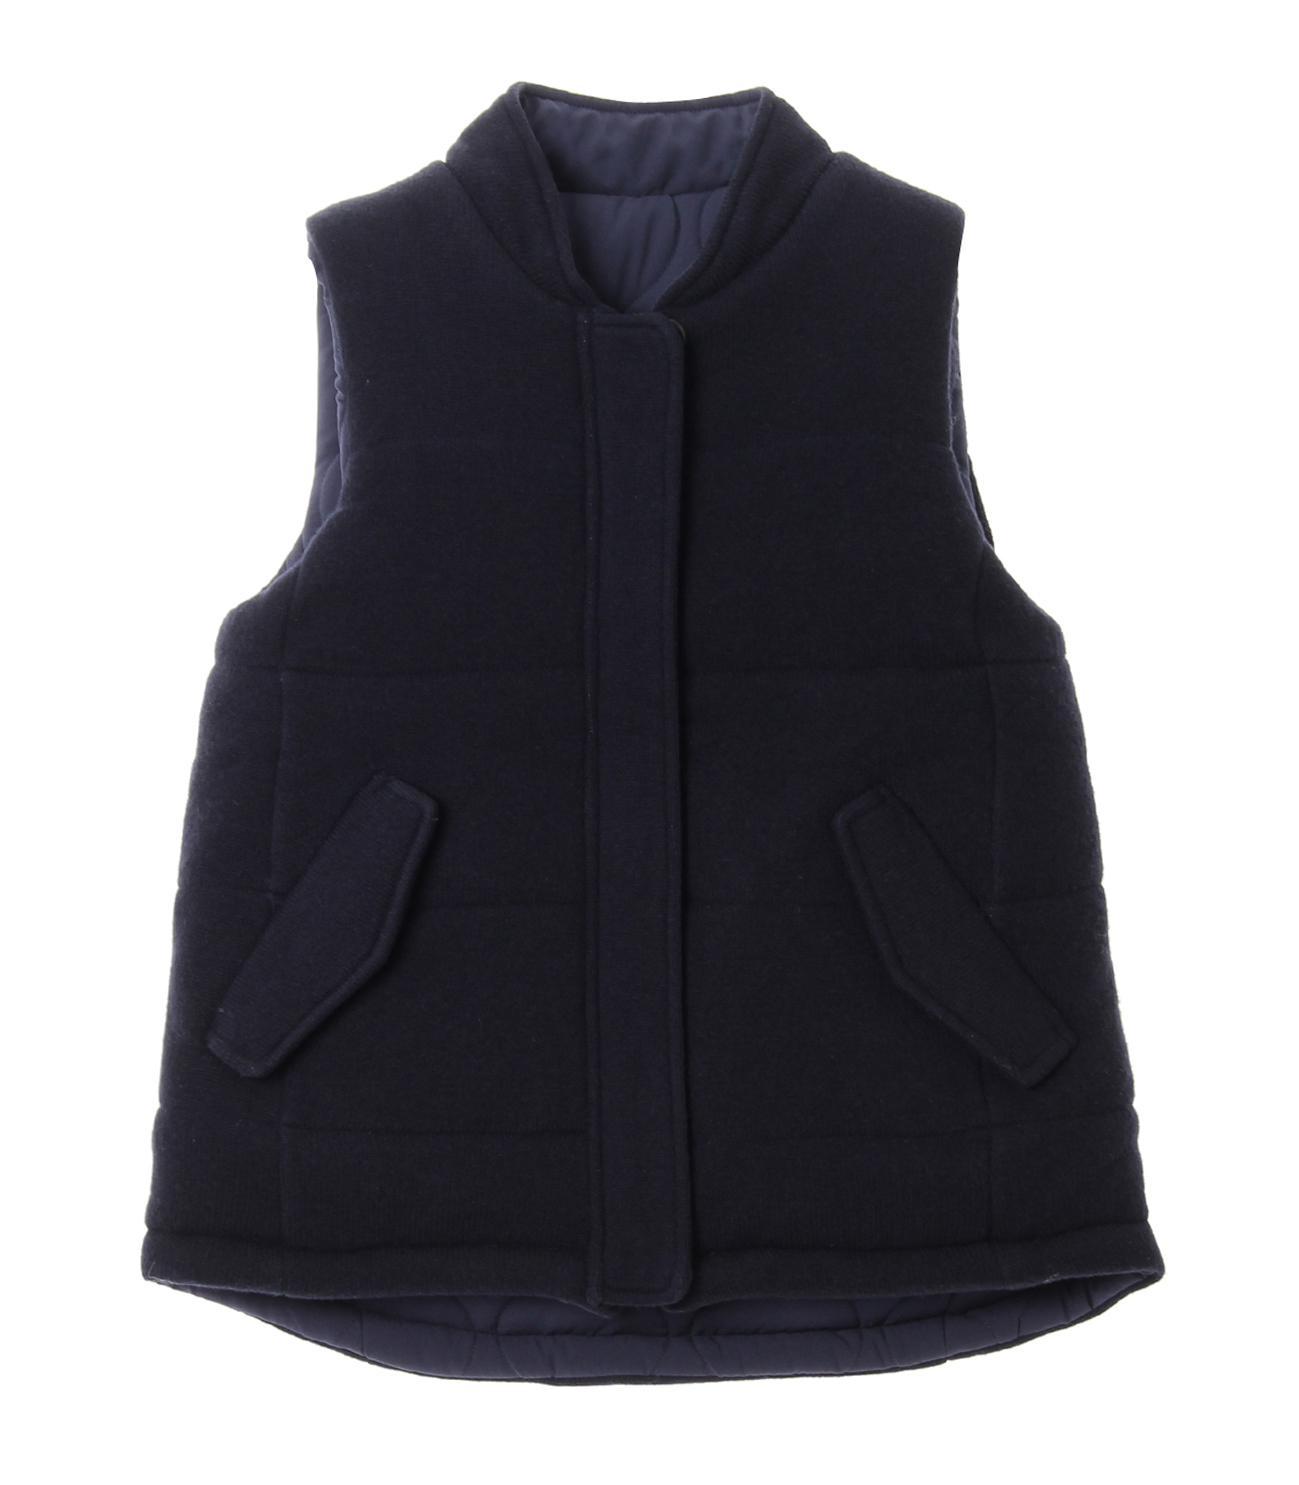 Wool outfit reversible outervest 詳細画像 navy 1